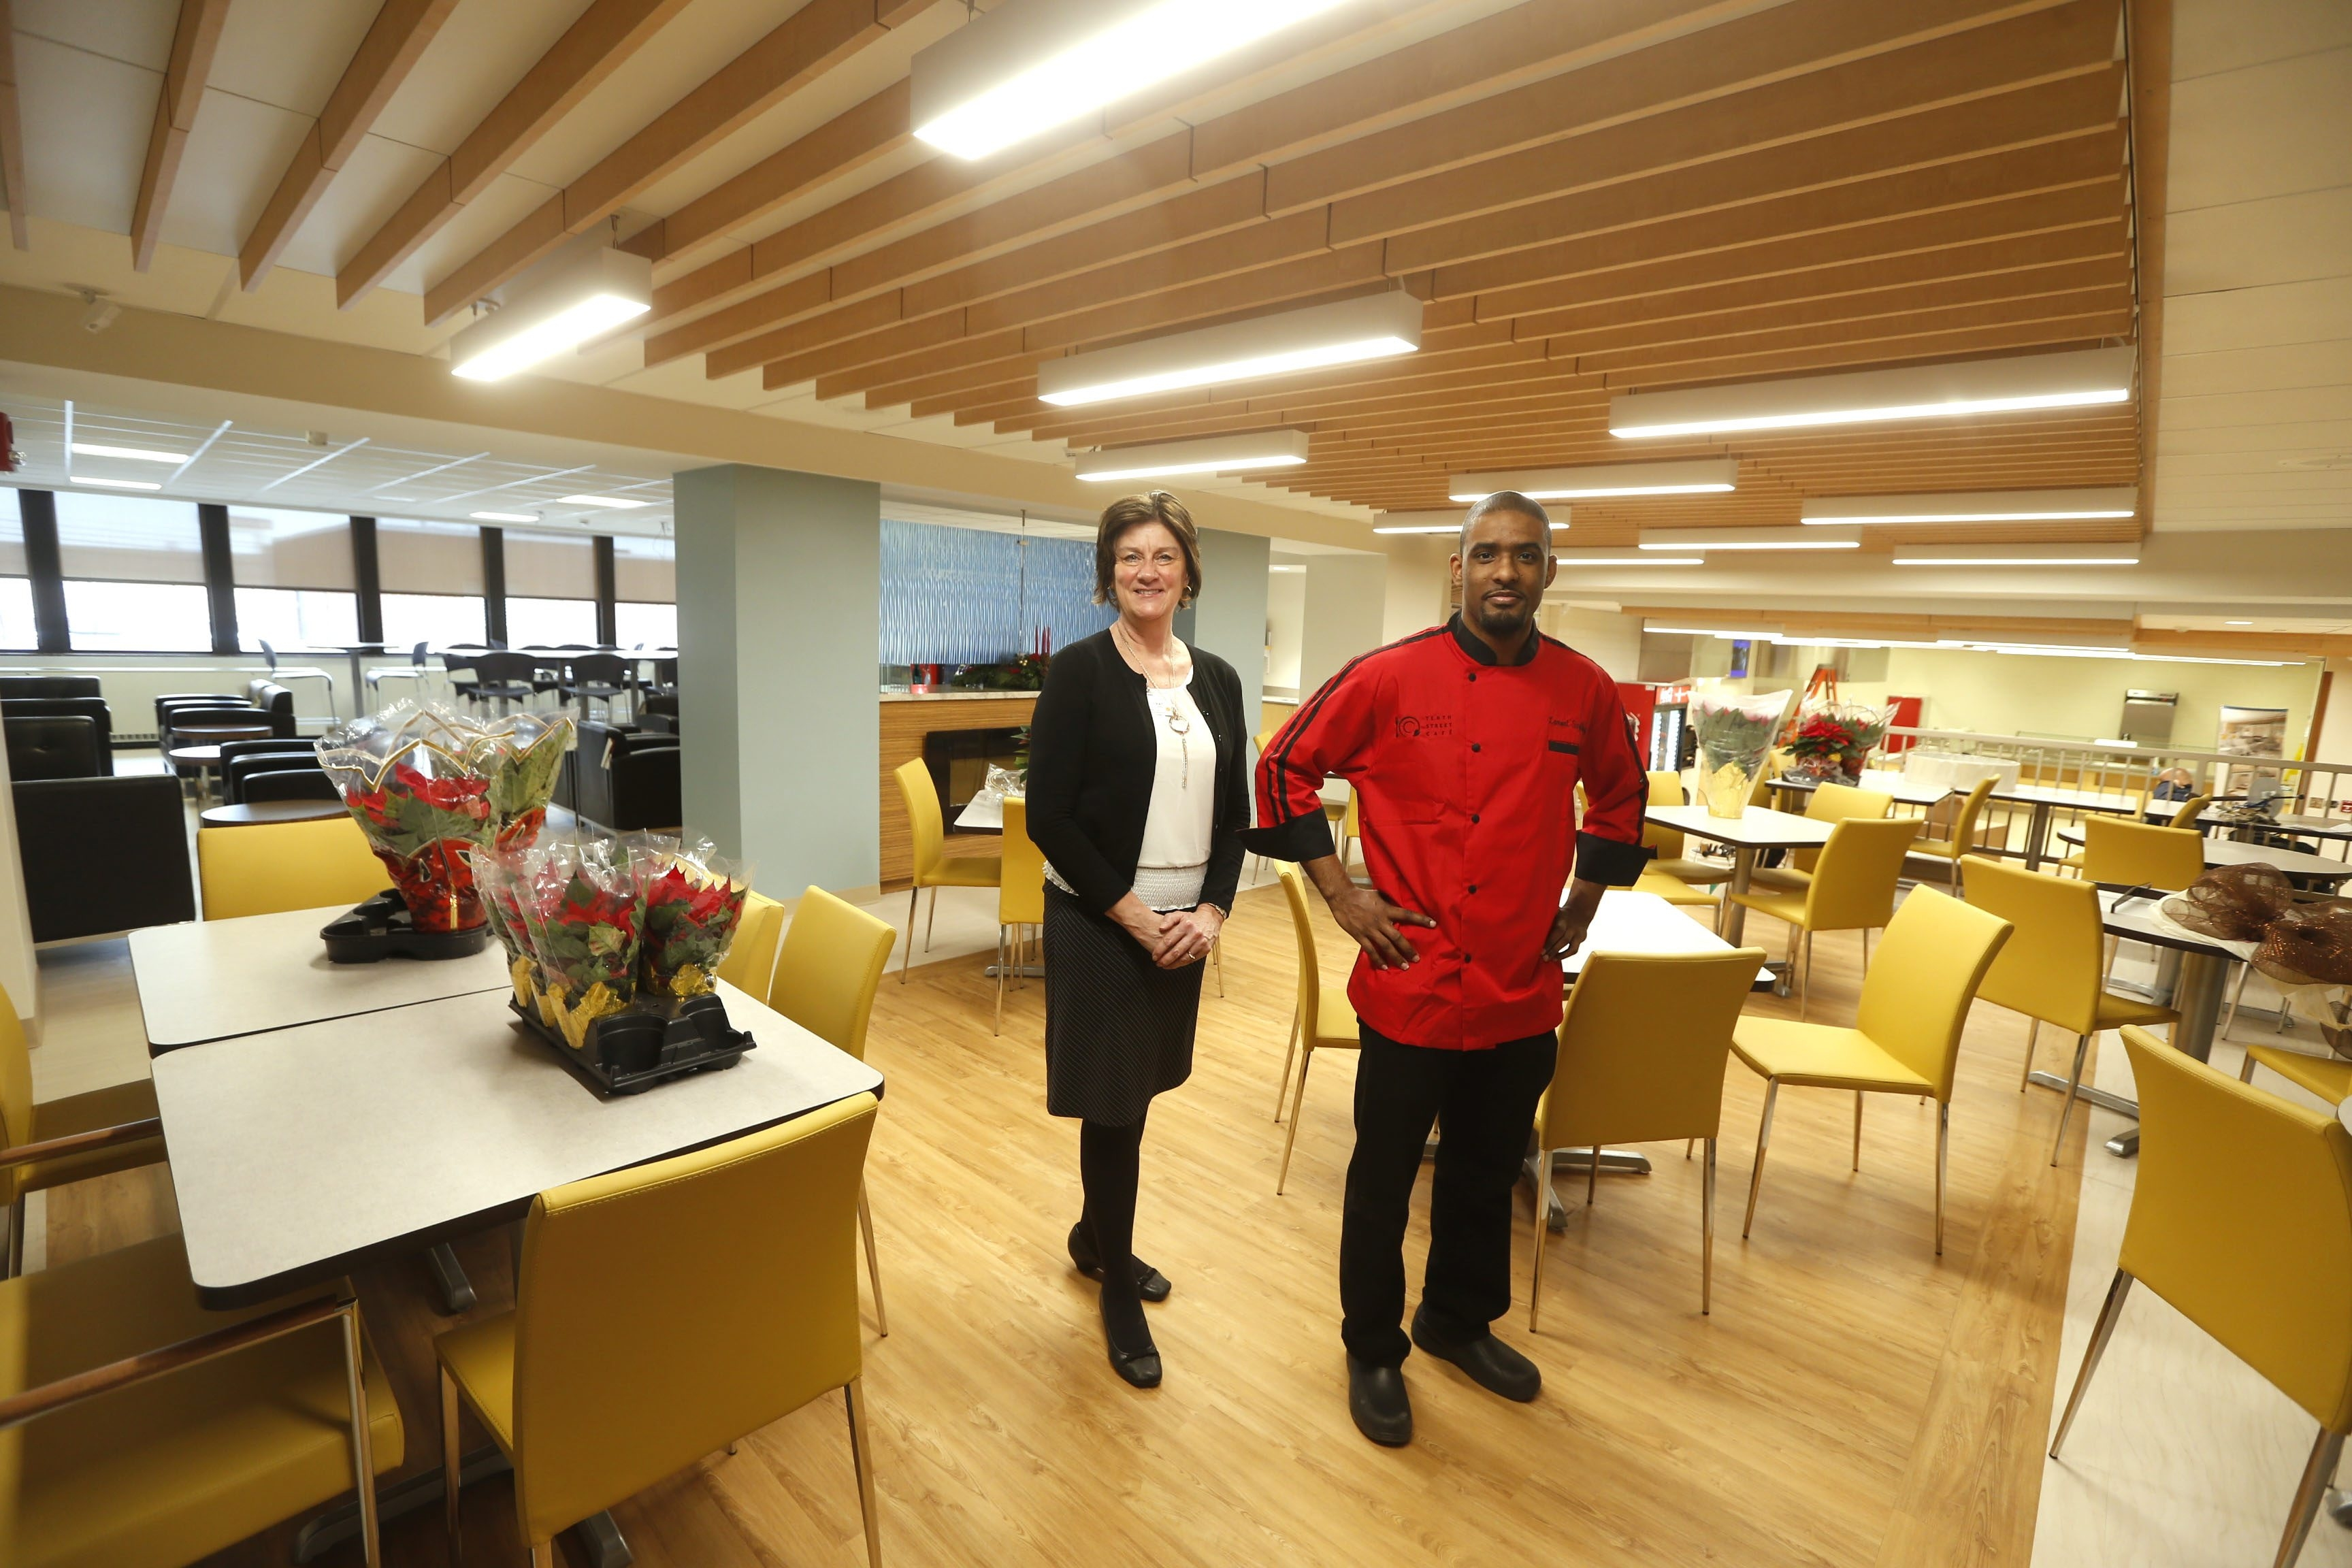 Patricia E. Denny, director of nutrition services for Niagara Falls Memorial Medical Center, and Lamont A. Singletary, manager and executive chef of the hospital's new Tenth Street Café, get ready for the public debut of café Jan. 5.